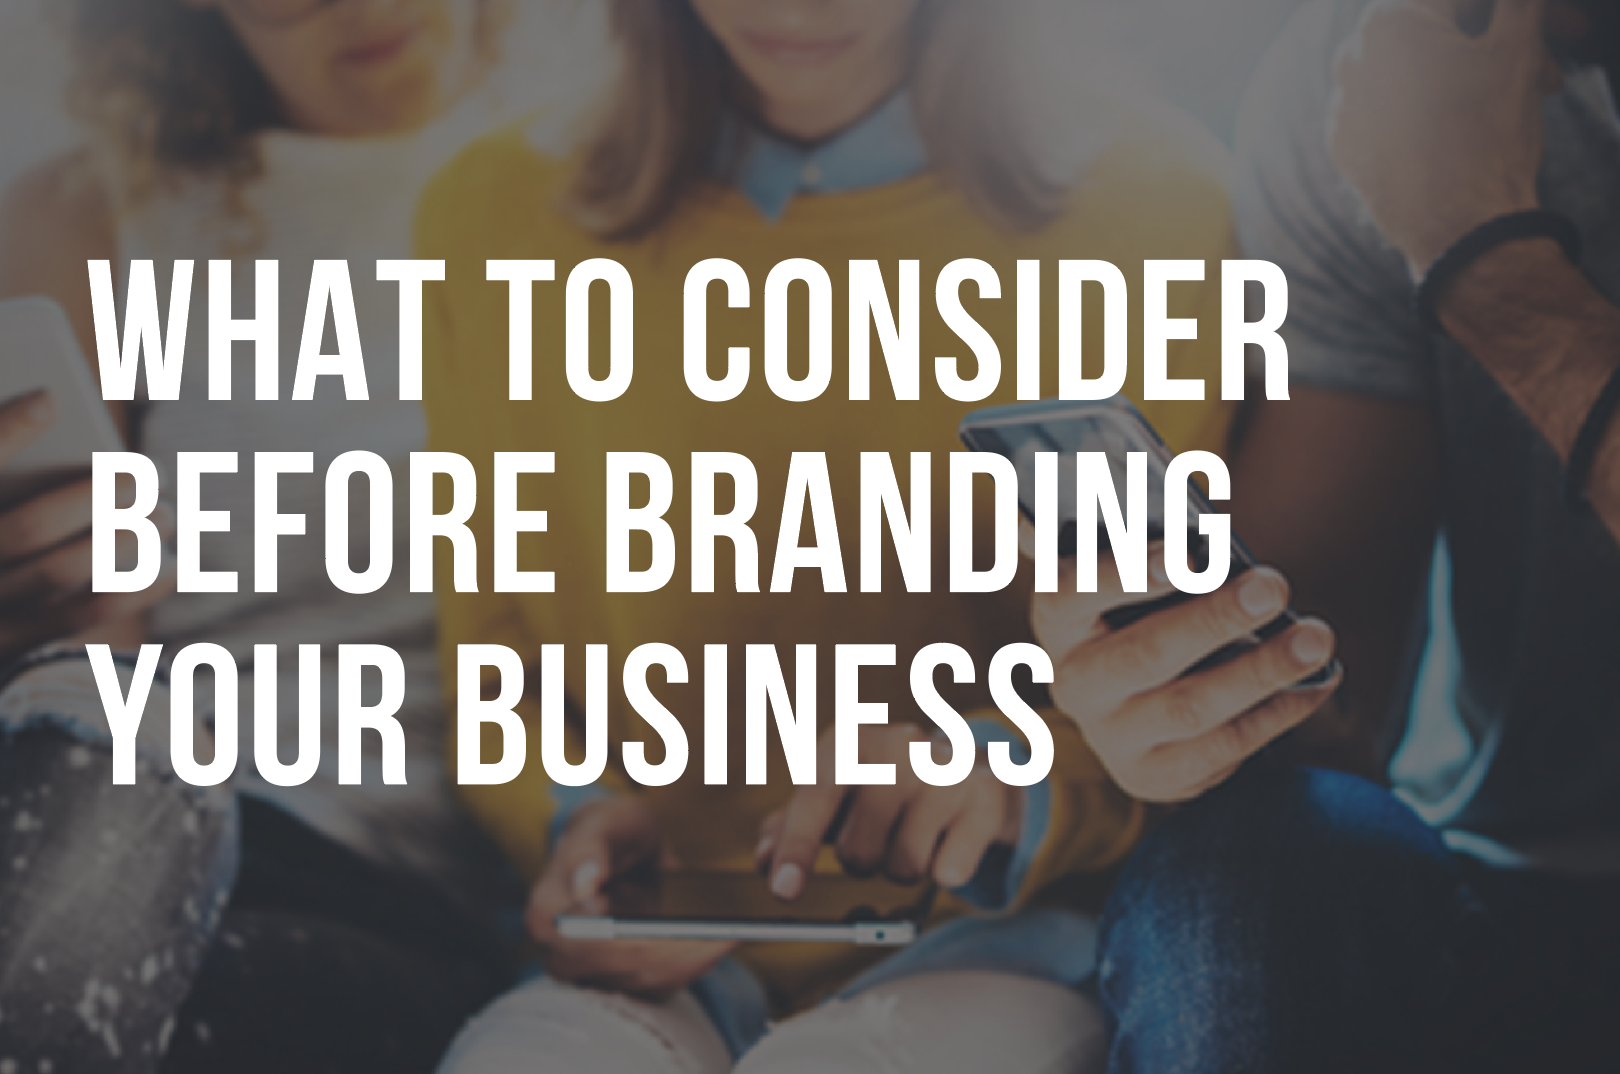 WHAT TO CONSIDER BEFORE BRANDING YOUR BUSINESS